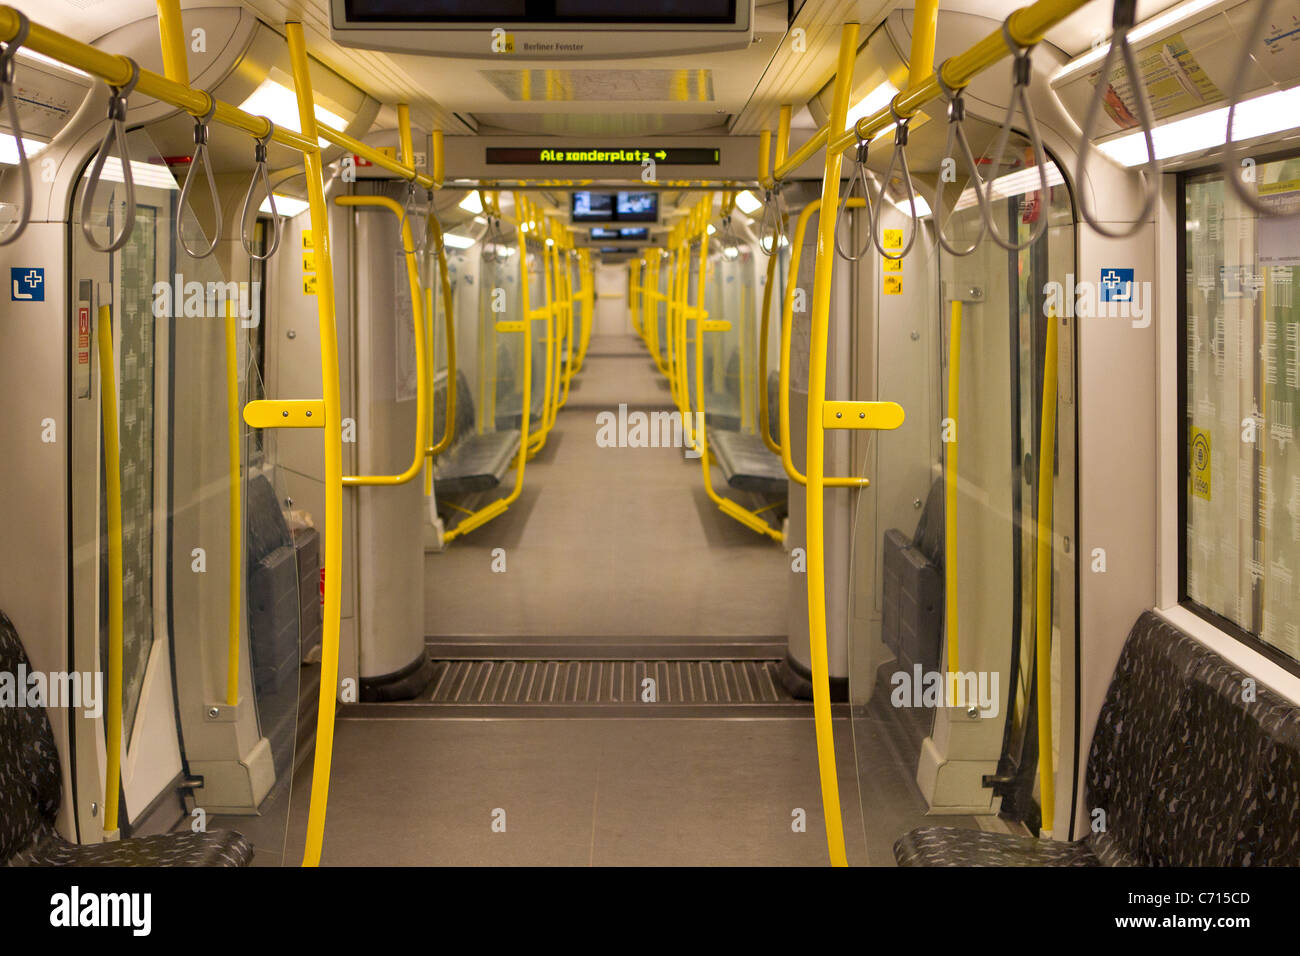 empty train tram carriage [NOP] vacant no people - Stock Image